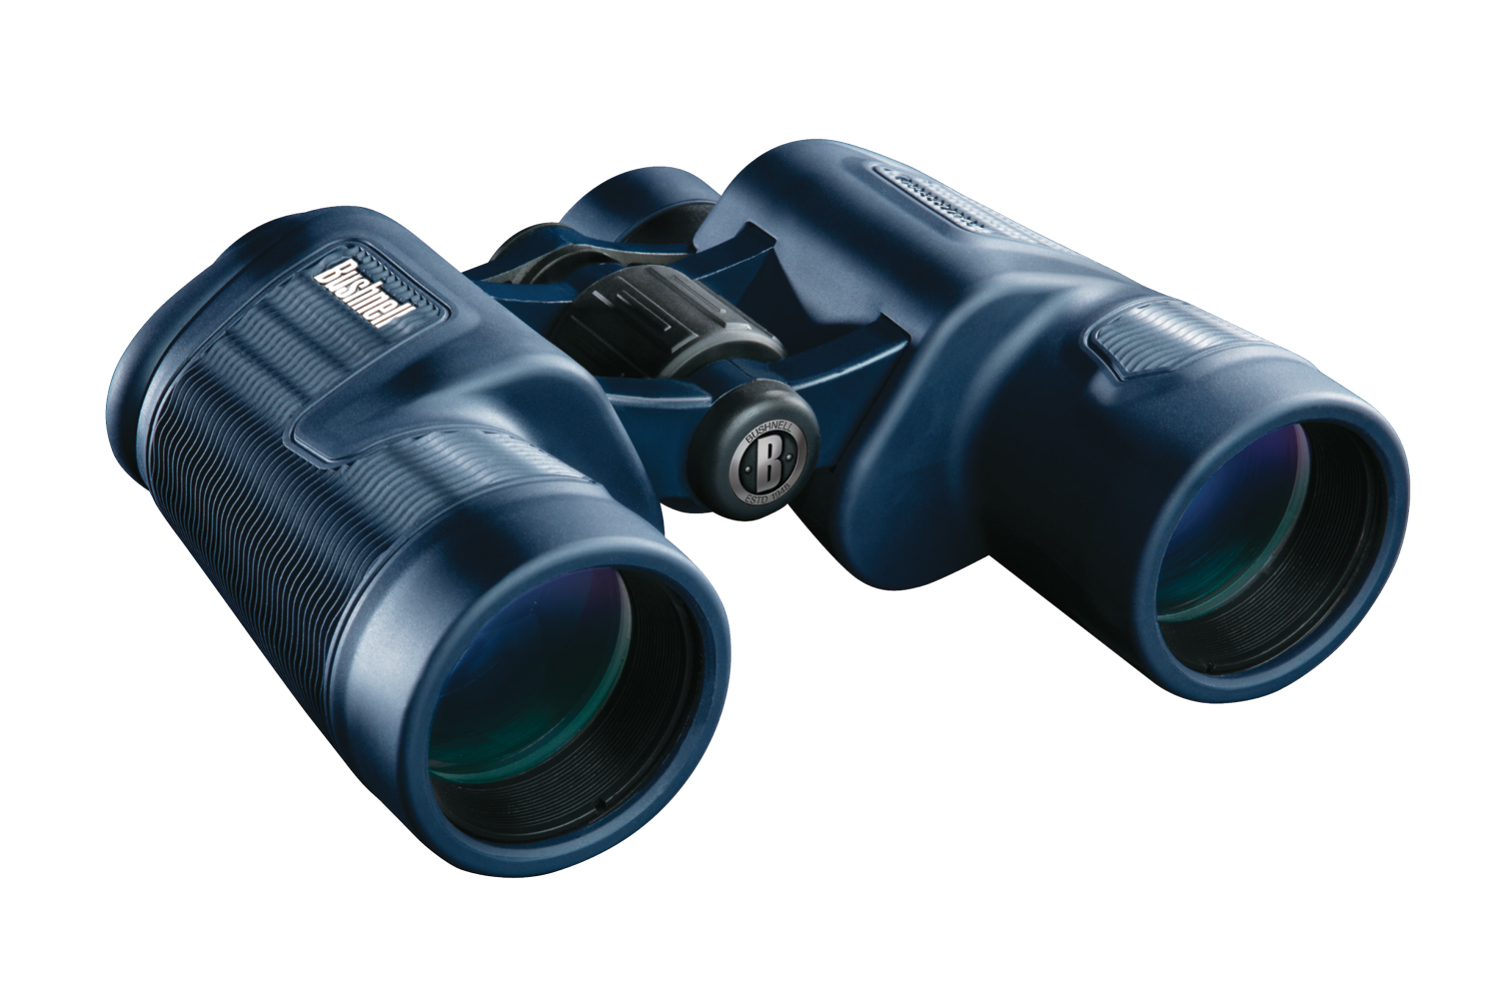 Бинокль Bushnell H2O PORRO 10x42 бинокль carl zeiss 10x42 hd conquest